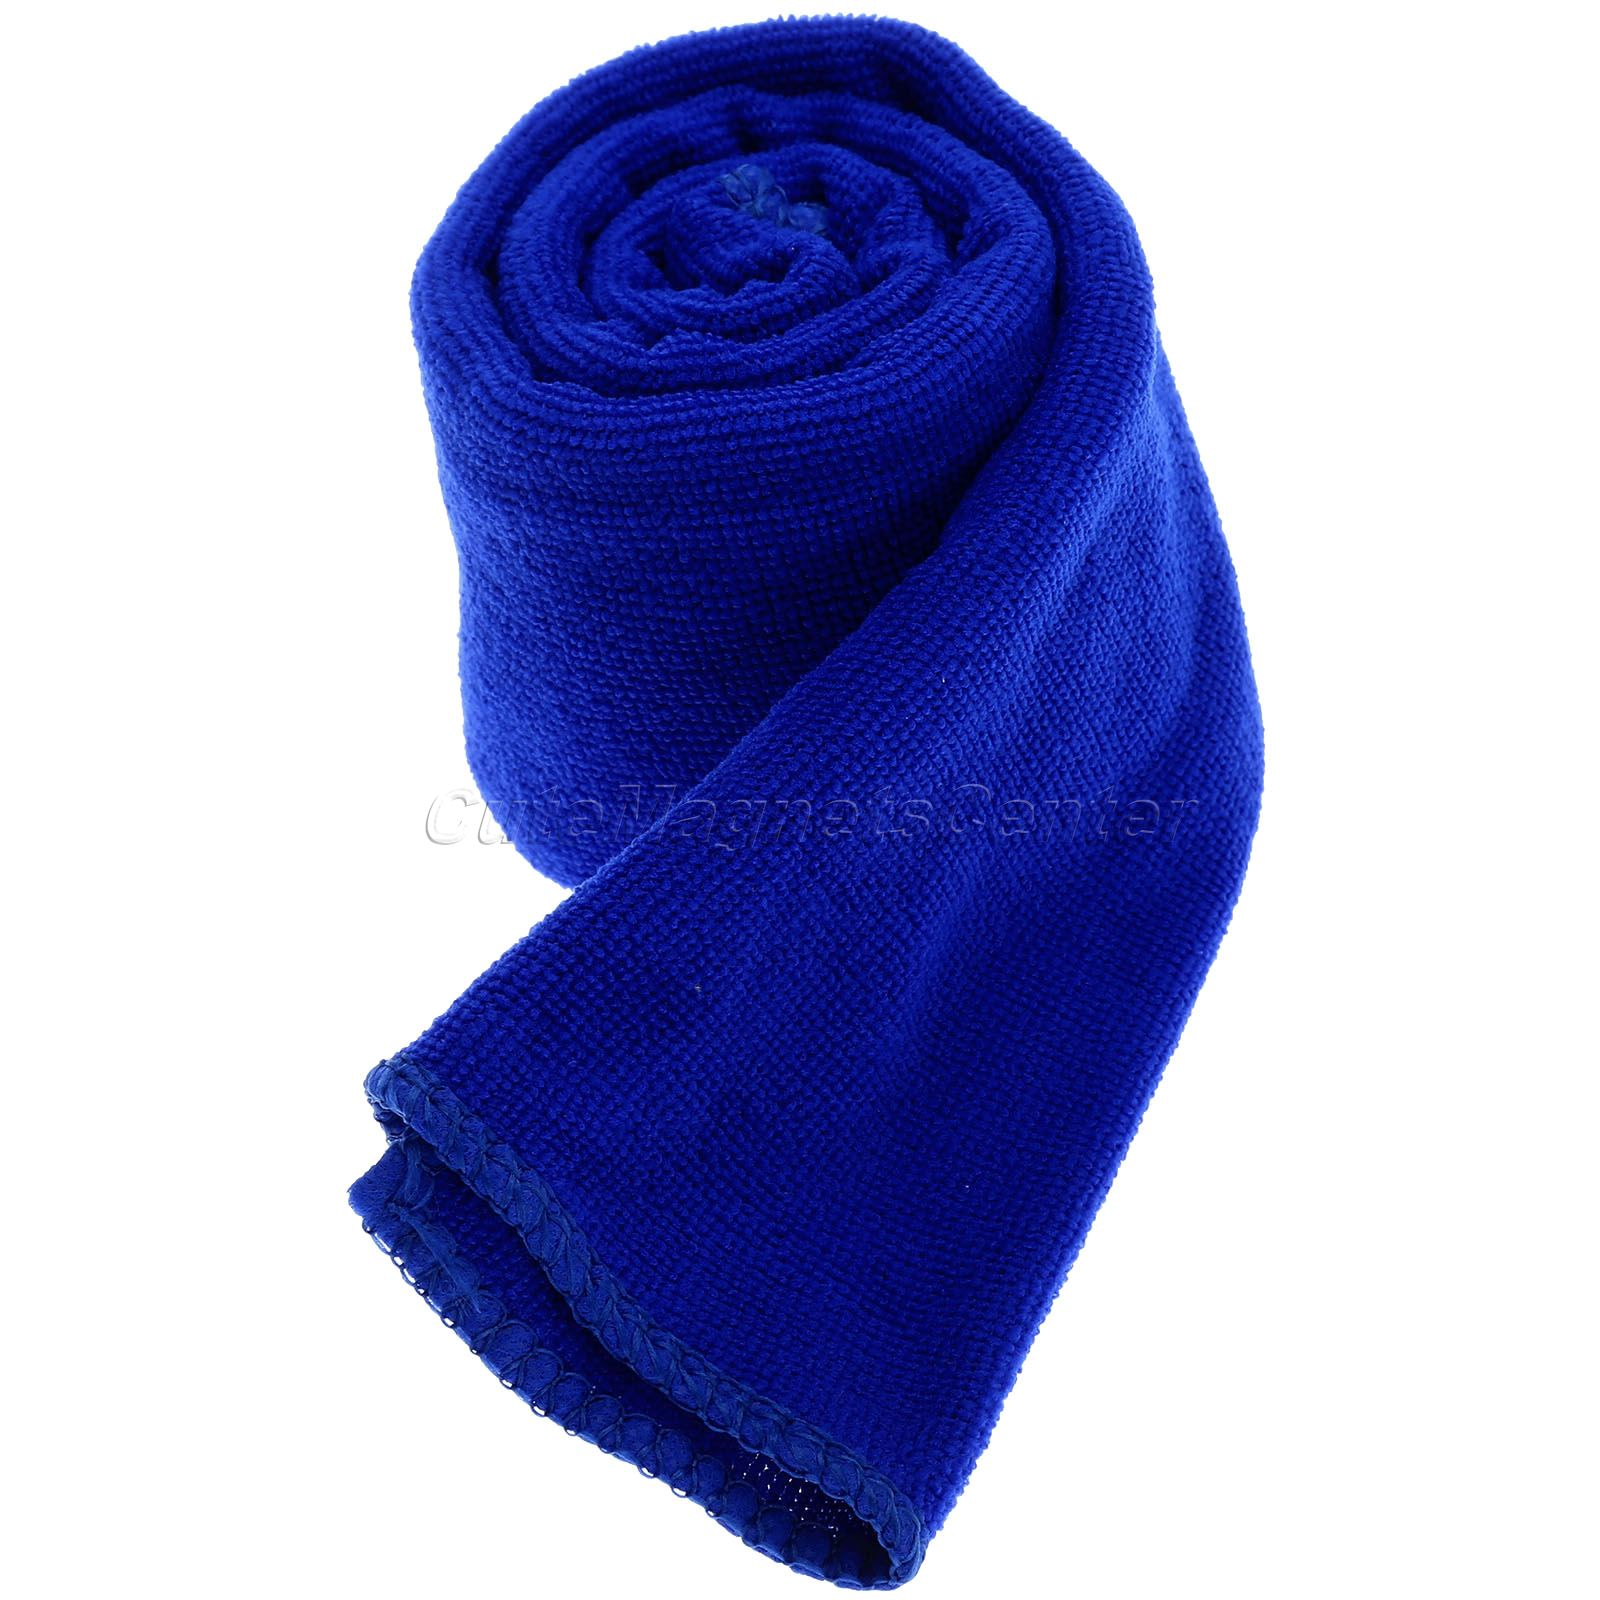 Microfiber Cleaning Cloth 30x70cm Car Wash Cloths Absorbent Car Drying Towel Home Dry Car Polishing Cloth Cleaning Washing Towel ultrafine absorbent towel used to clean the car